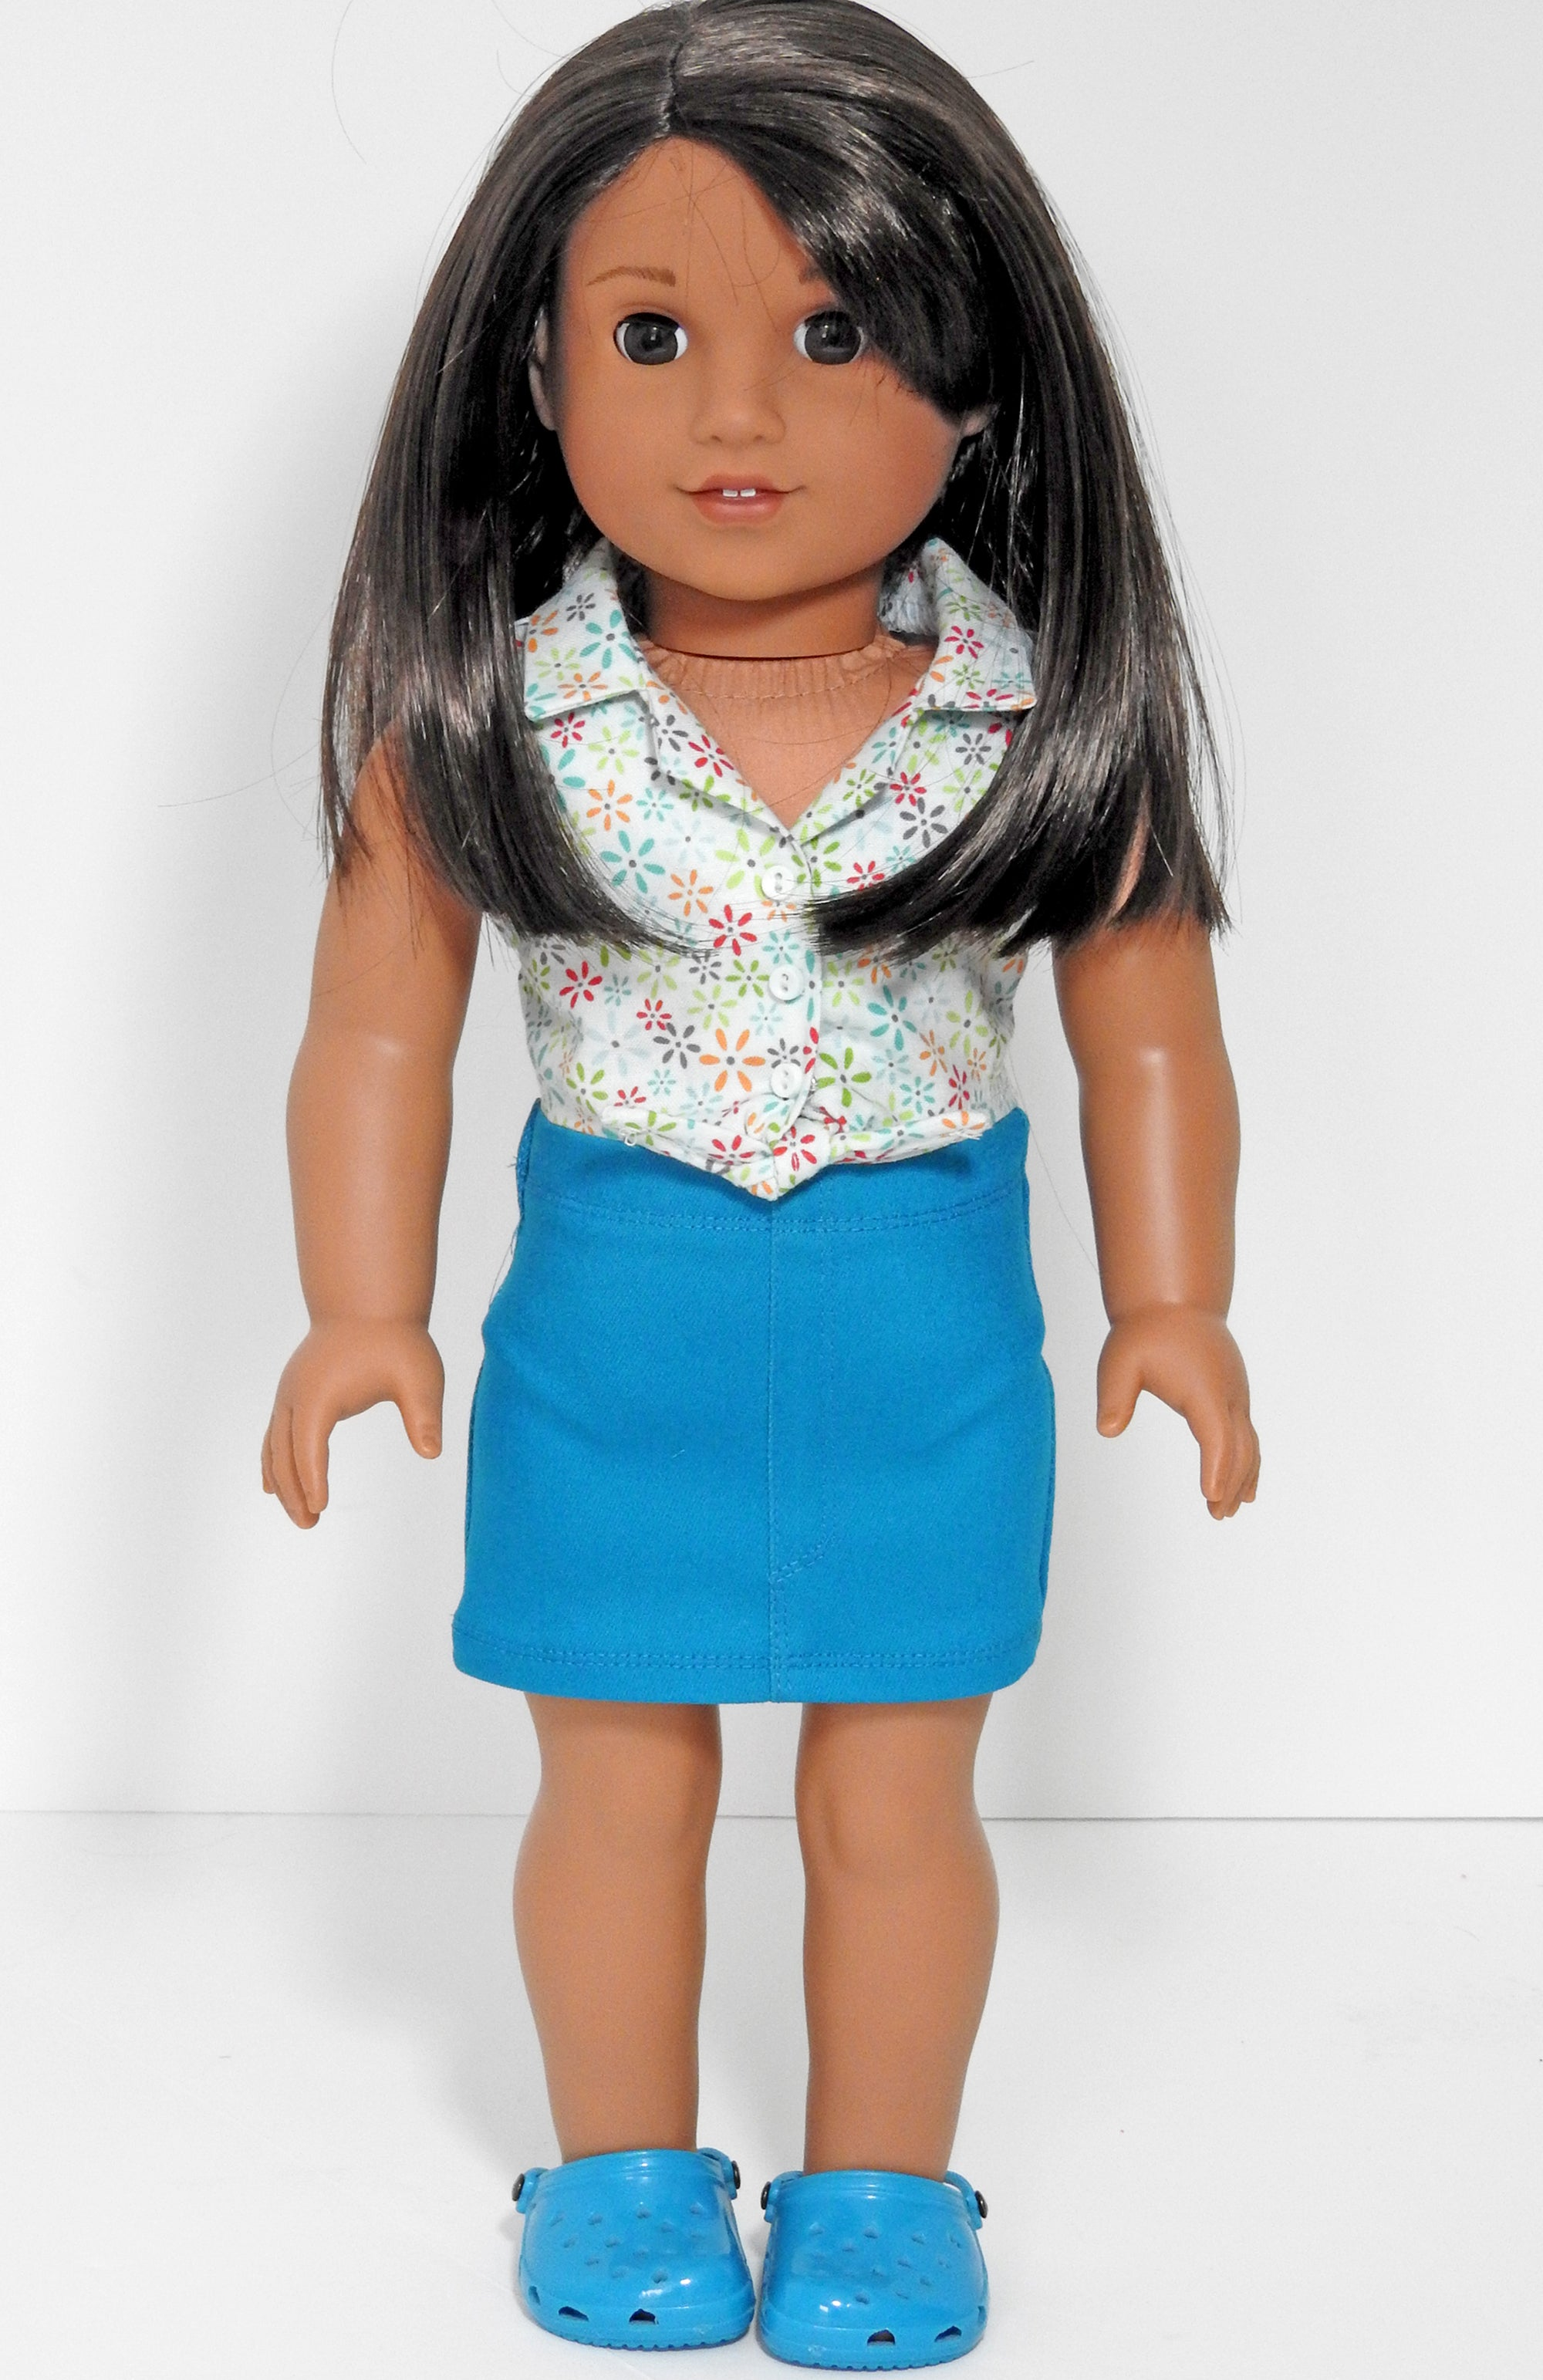 AG Doll Mini Skirt and Tie Blouse